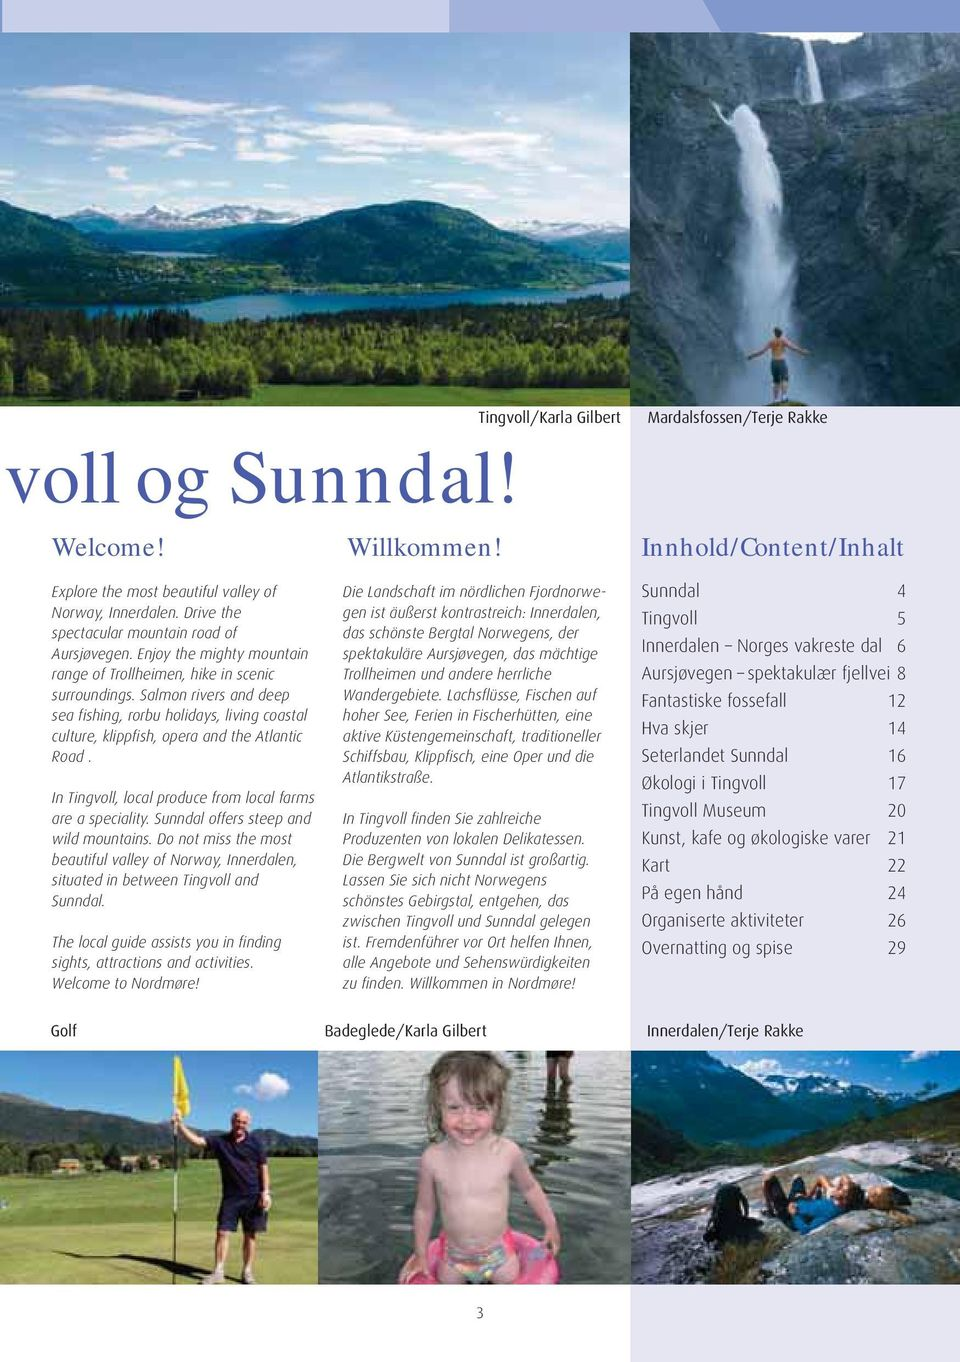 Salmon rivers and deep sea fishing, rorbu holidays, living coastal culture, klippfish, opera and the Atlantic Road. In Tingvoll, local produce from local farms are a speciality.